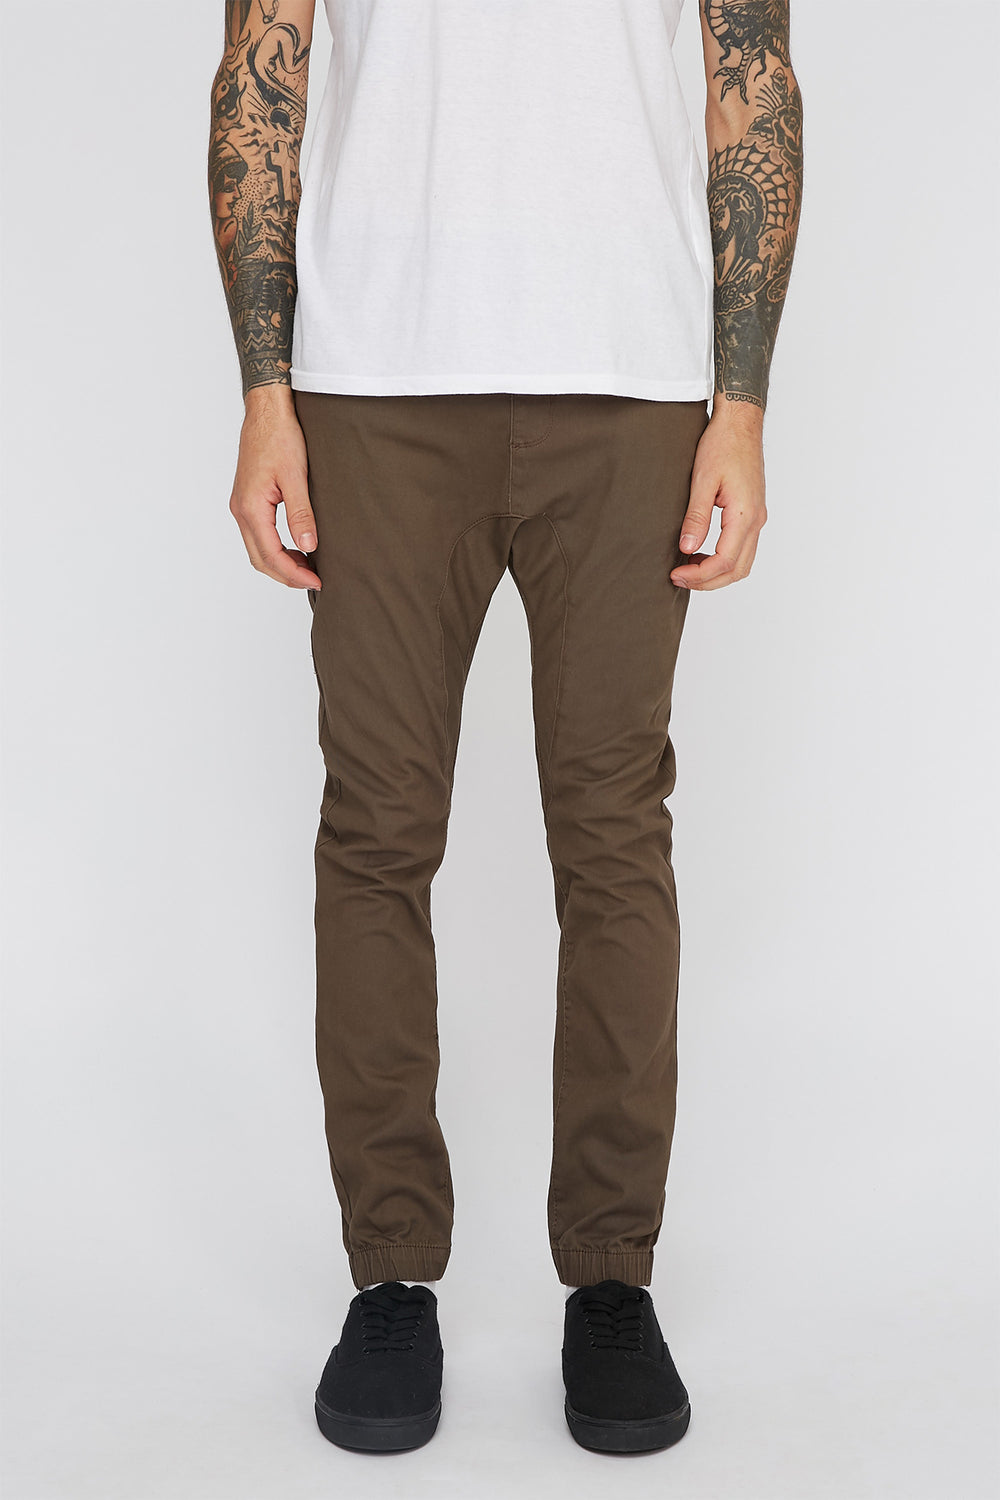 Jogger À 5 Poches Zoo York Homme Brun